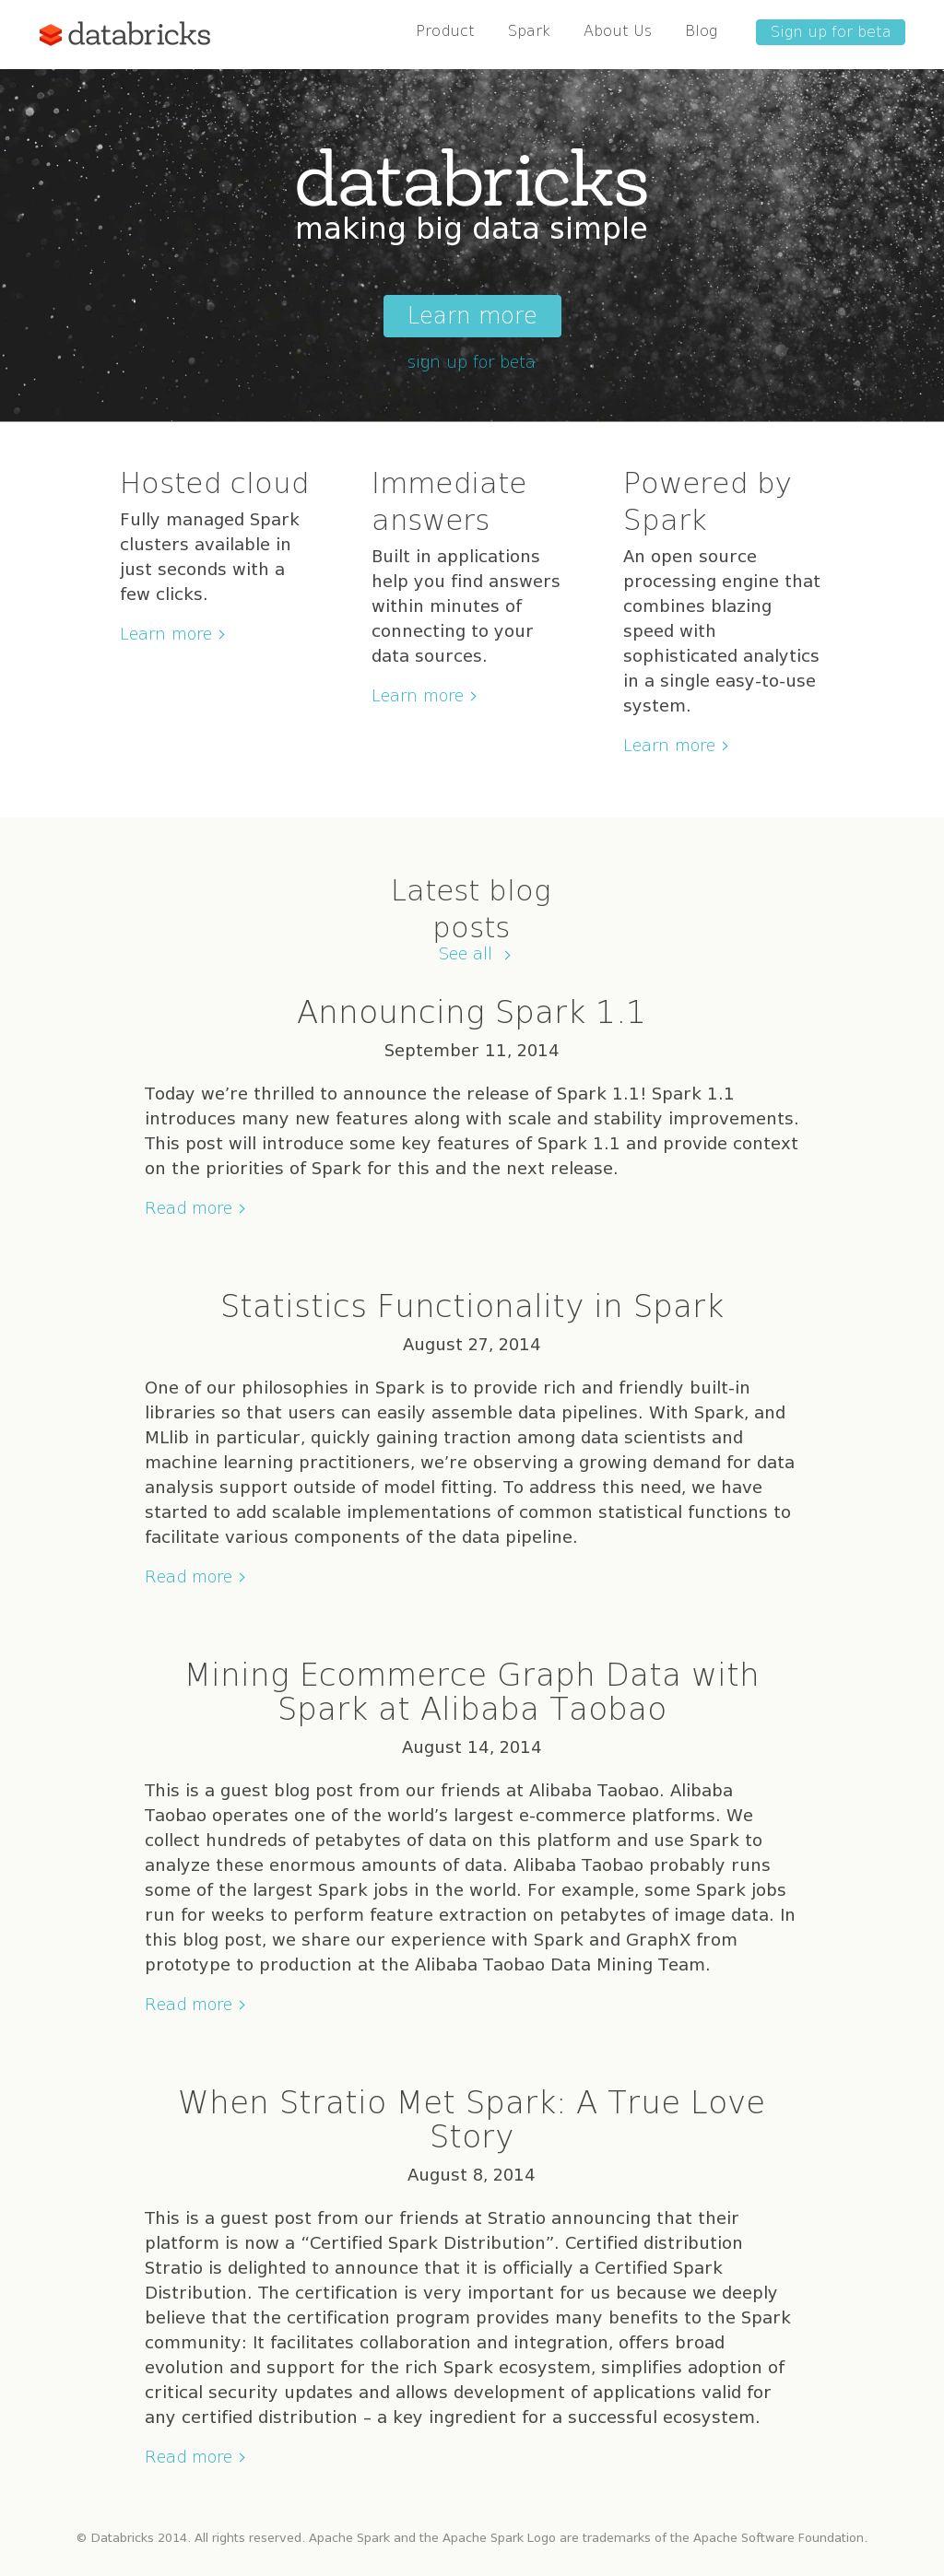 Databricks Competitors, Revenue and Employees - Owler